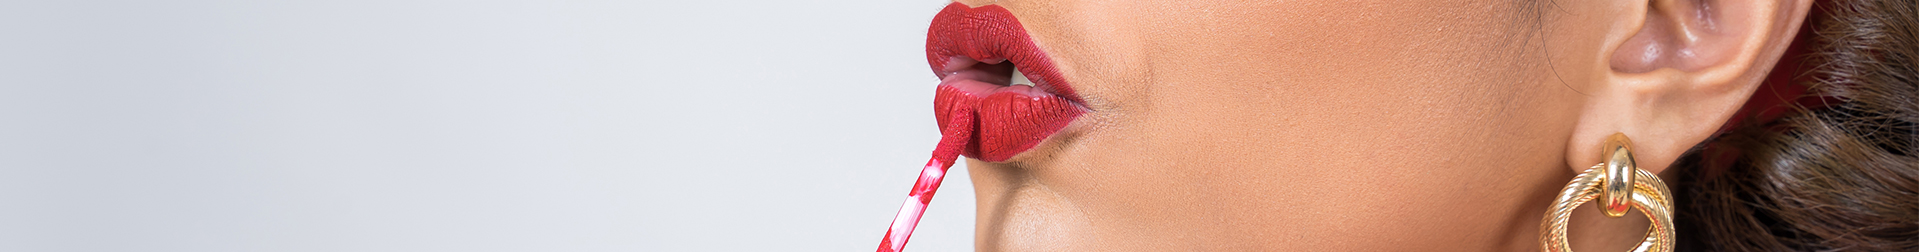 Makeup Lip Products | Lip Stain - Buy Lip Stains Online | AromaCraze